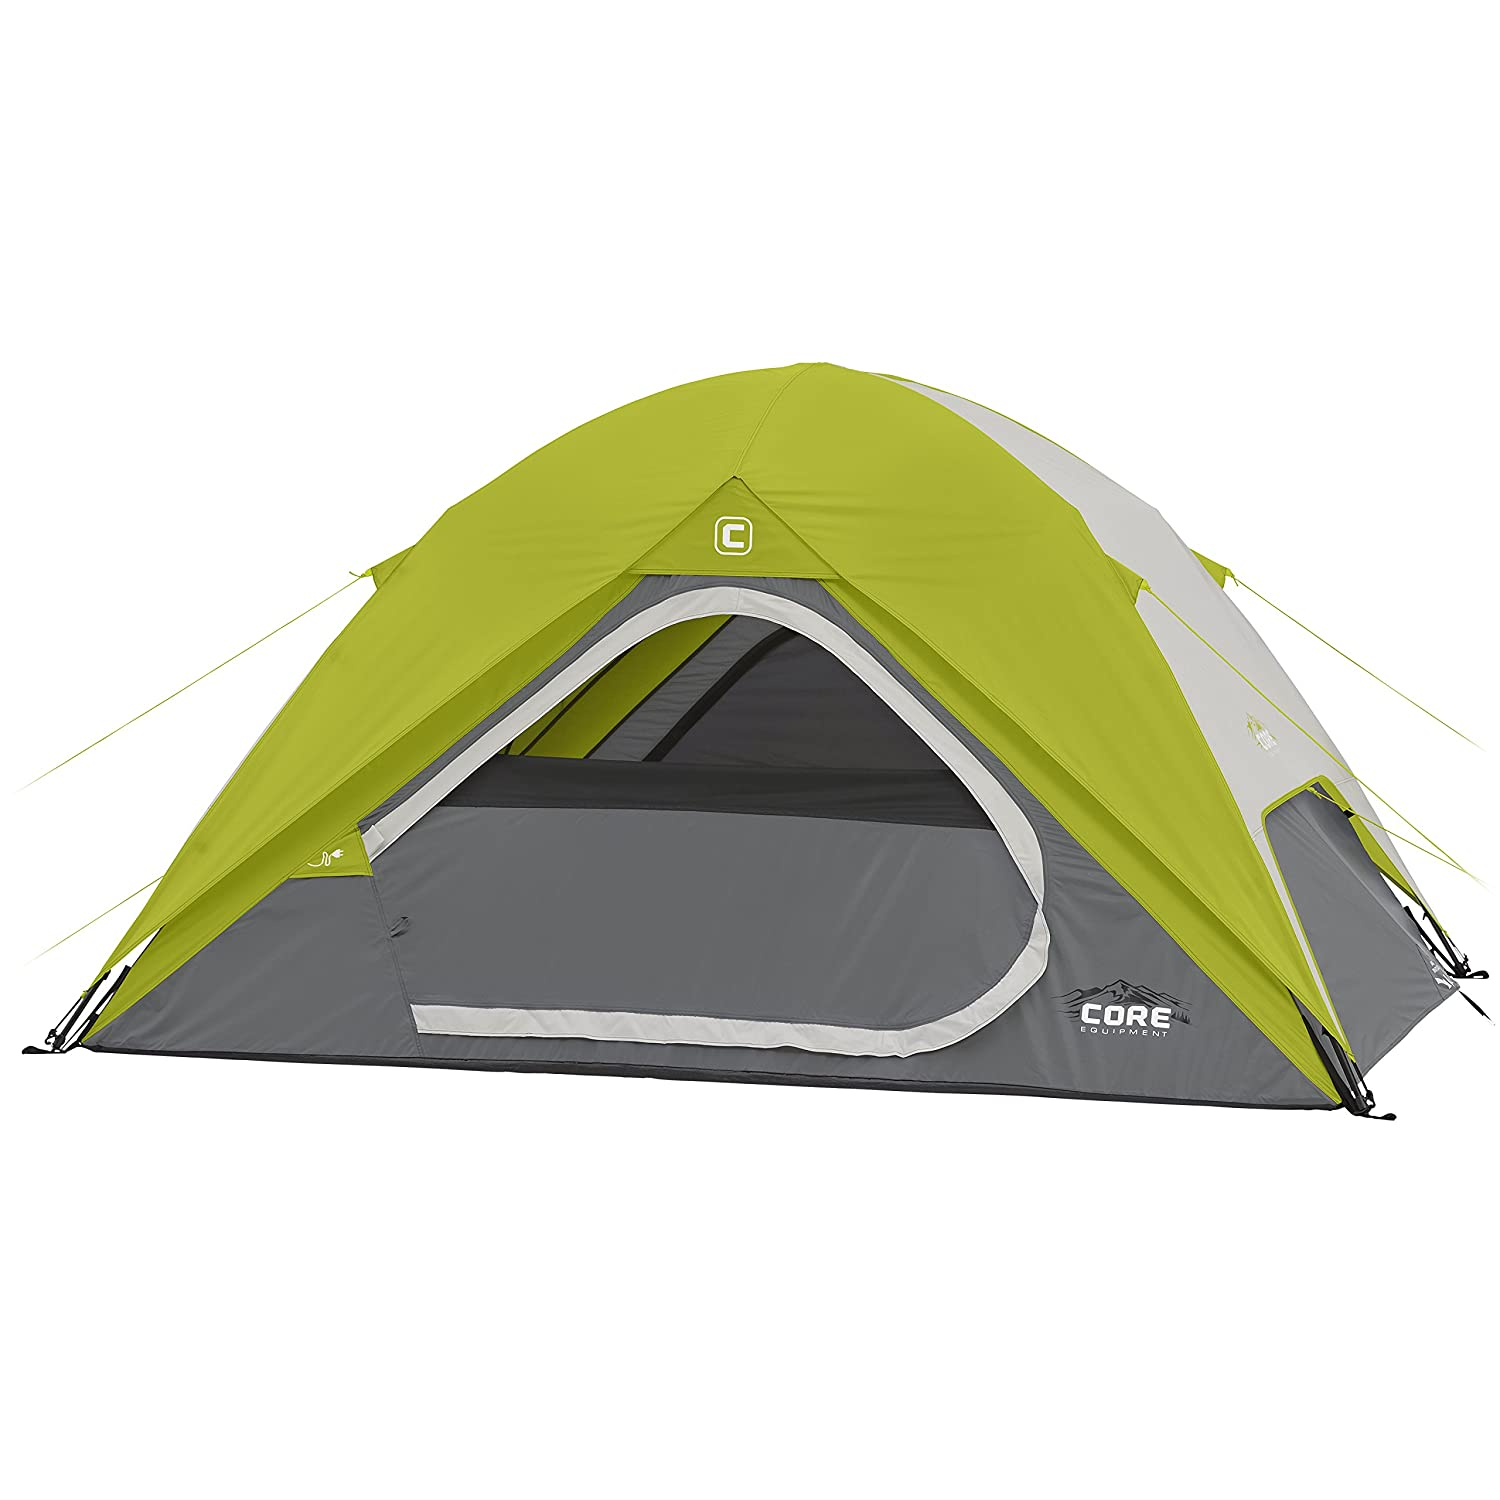 Amazon.com  CORE 4 Person Instant Dome Tent - 9u0027 x 7u0027  Sports u0026 Outdoors  sc 1 st  Amazon.com & Amazon.com : CORE 4 Person Instant Dome Tent - 9u0027 x 7u0027 : Sports ...